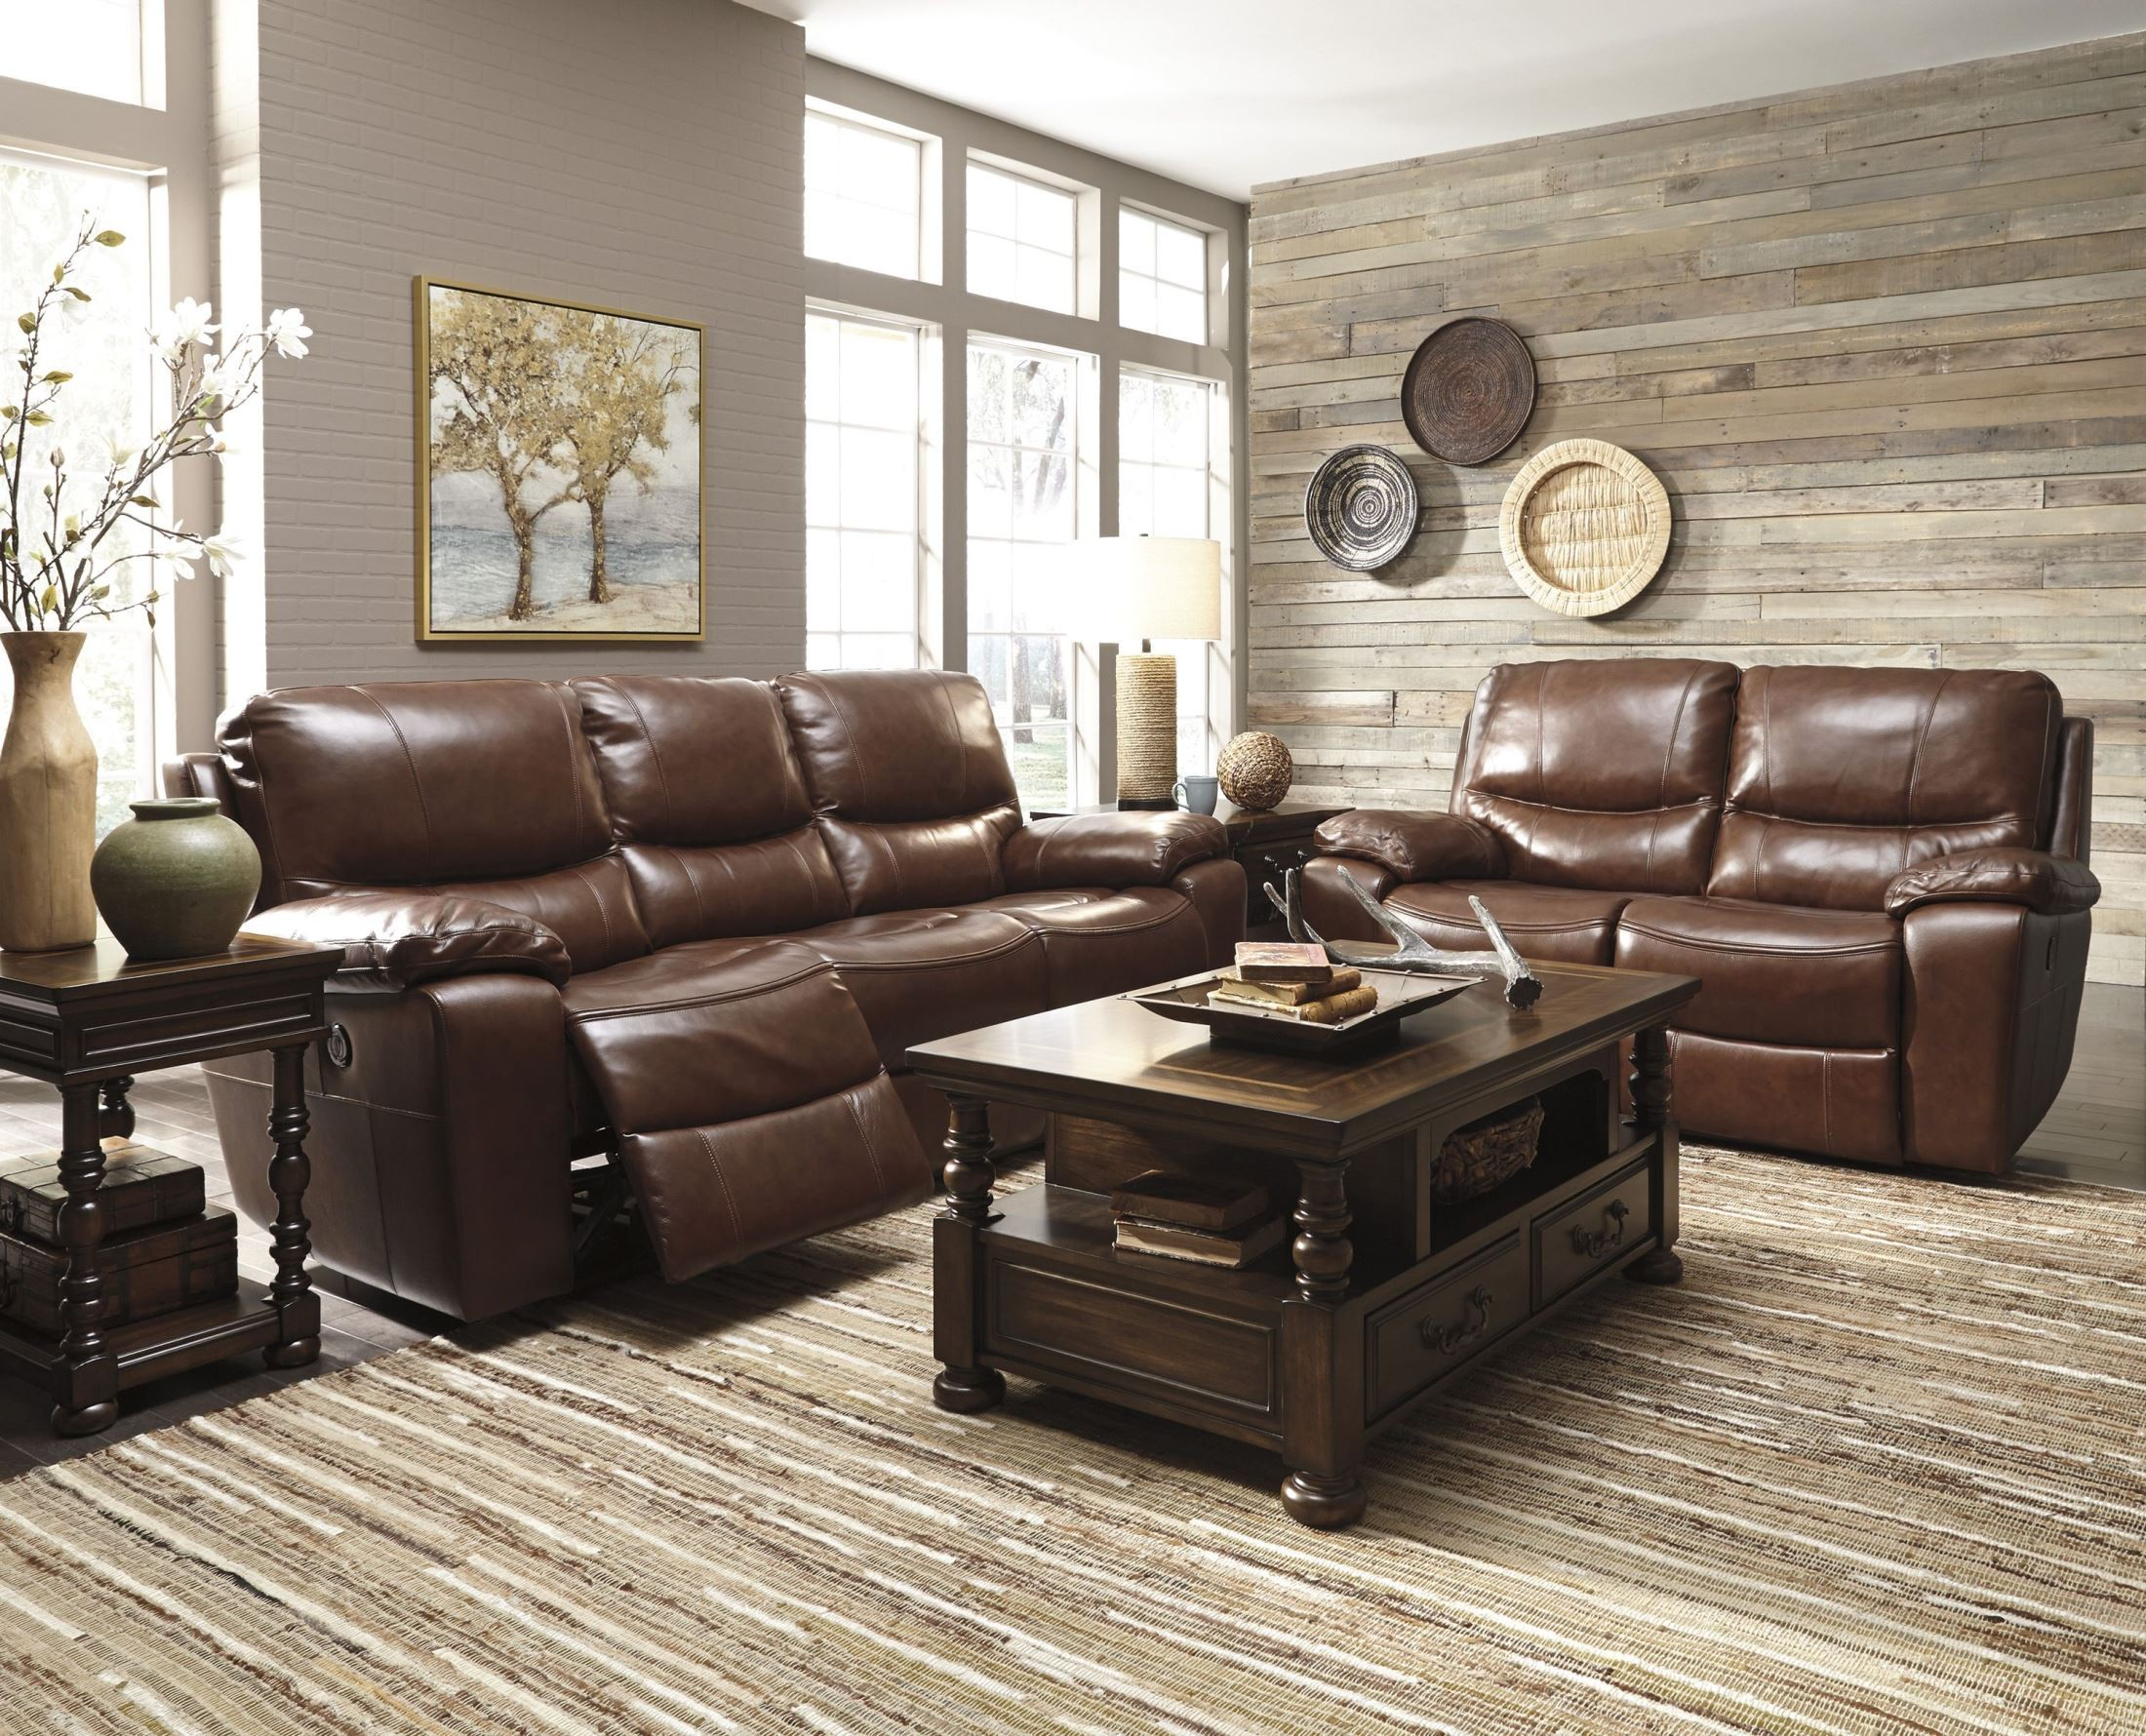 Penache saddle power reclining loveseat from ashley for Affordable furniture 3 piece sectional in wyoming saddle